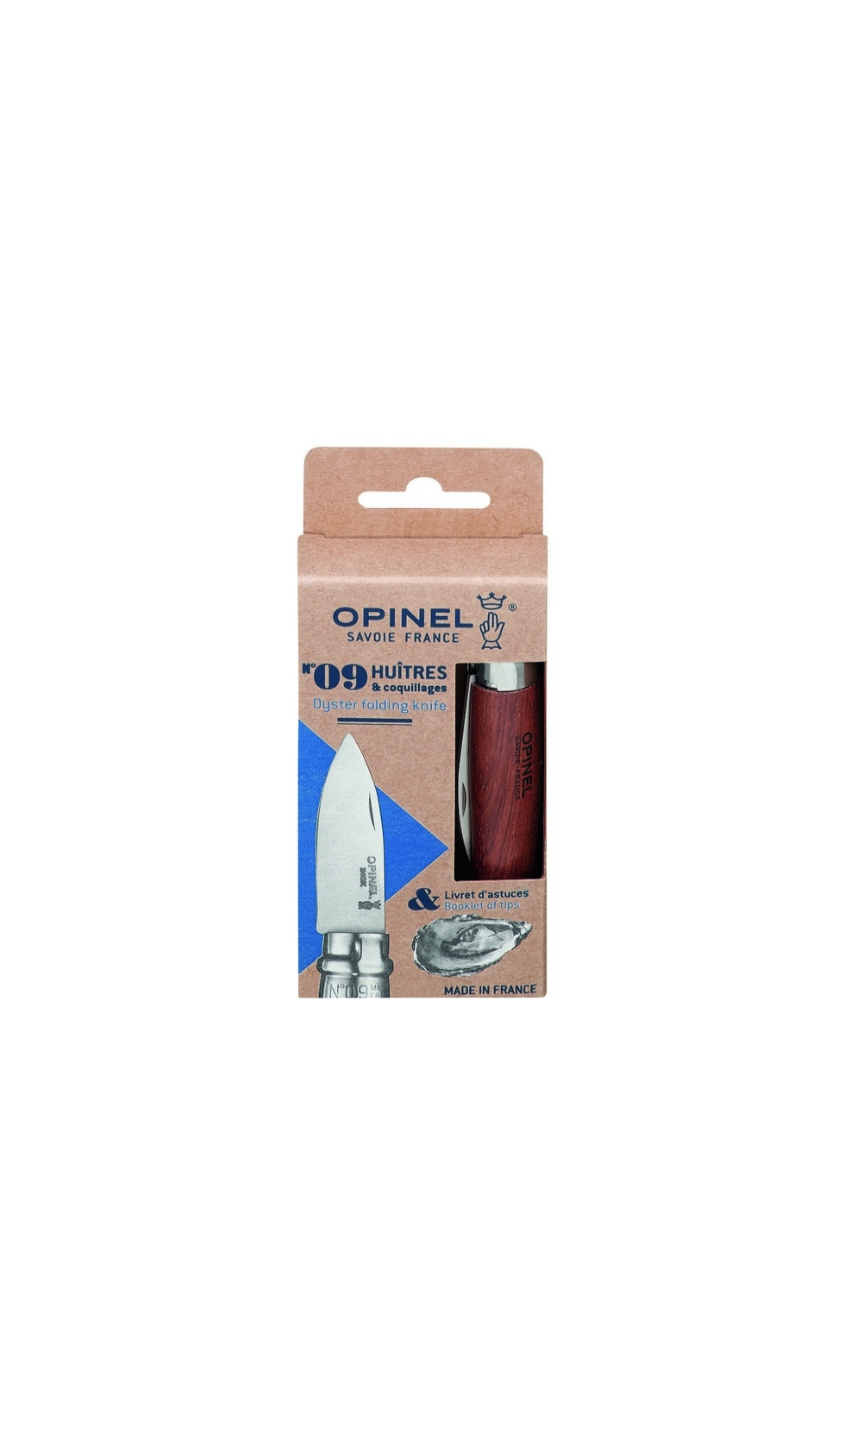 OPINEL N°9 COUTEAU HUITRES & COQUILLAGES NATURE INOX HOOD COUPE DECOUPE CUISINE 3123840016165 HOME COOKING KITCHEN NATURE INOX HOOD COMASOUND KARTEL CSK ONLINE